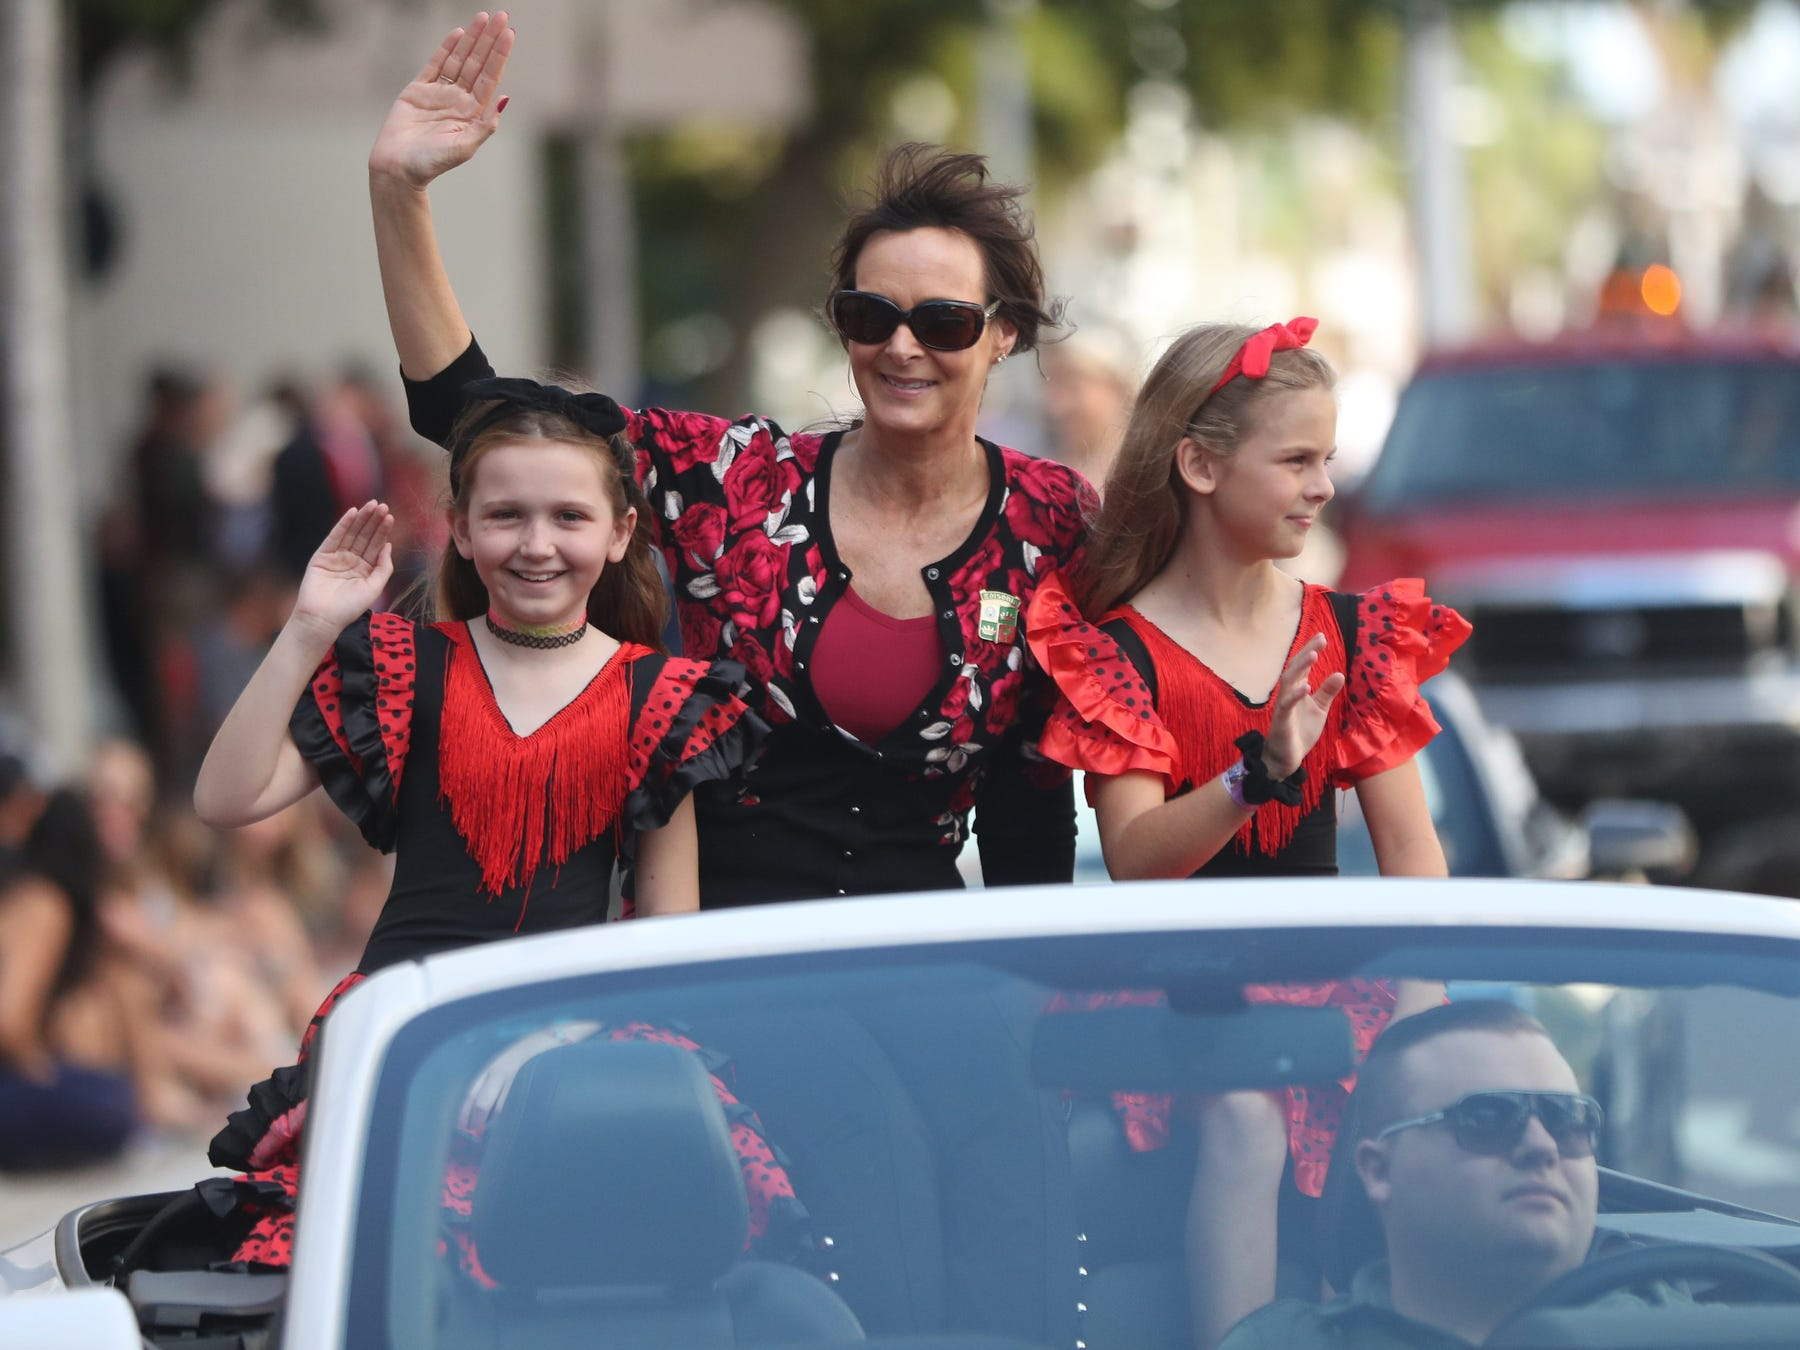 Scenes from the Edison Festival of Light Junior Parade on Sunday in downtown Fort Myers. More than 70 groups participated in the annual event.